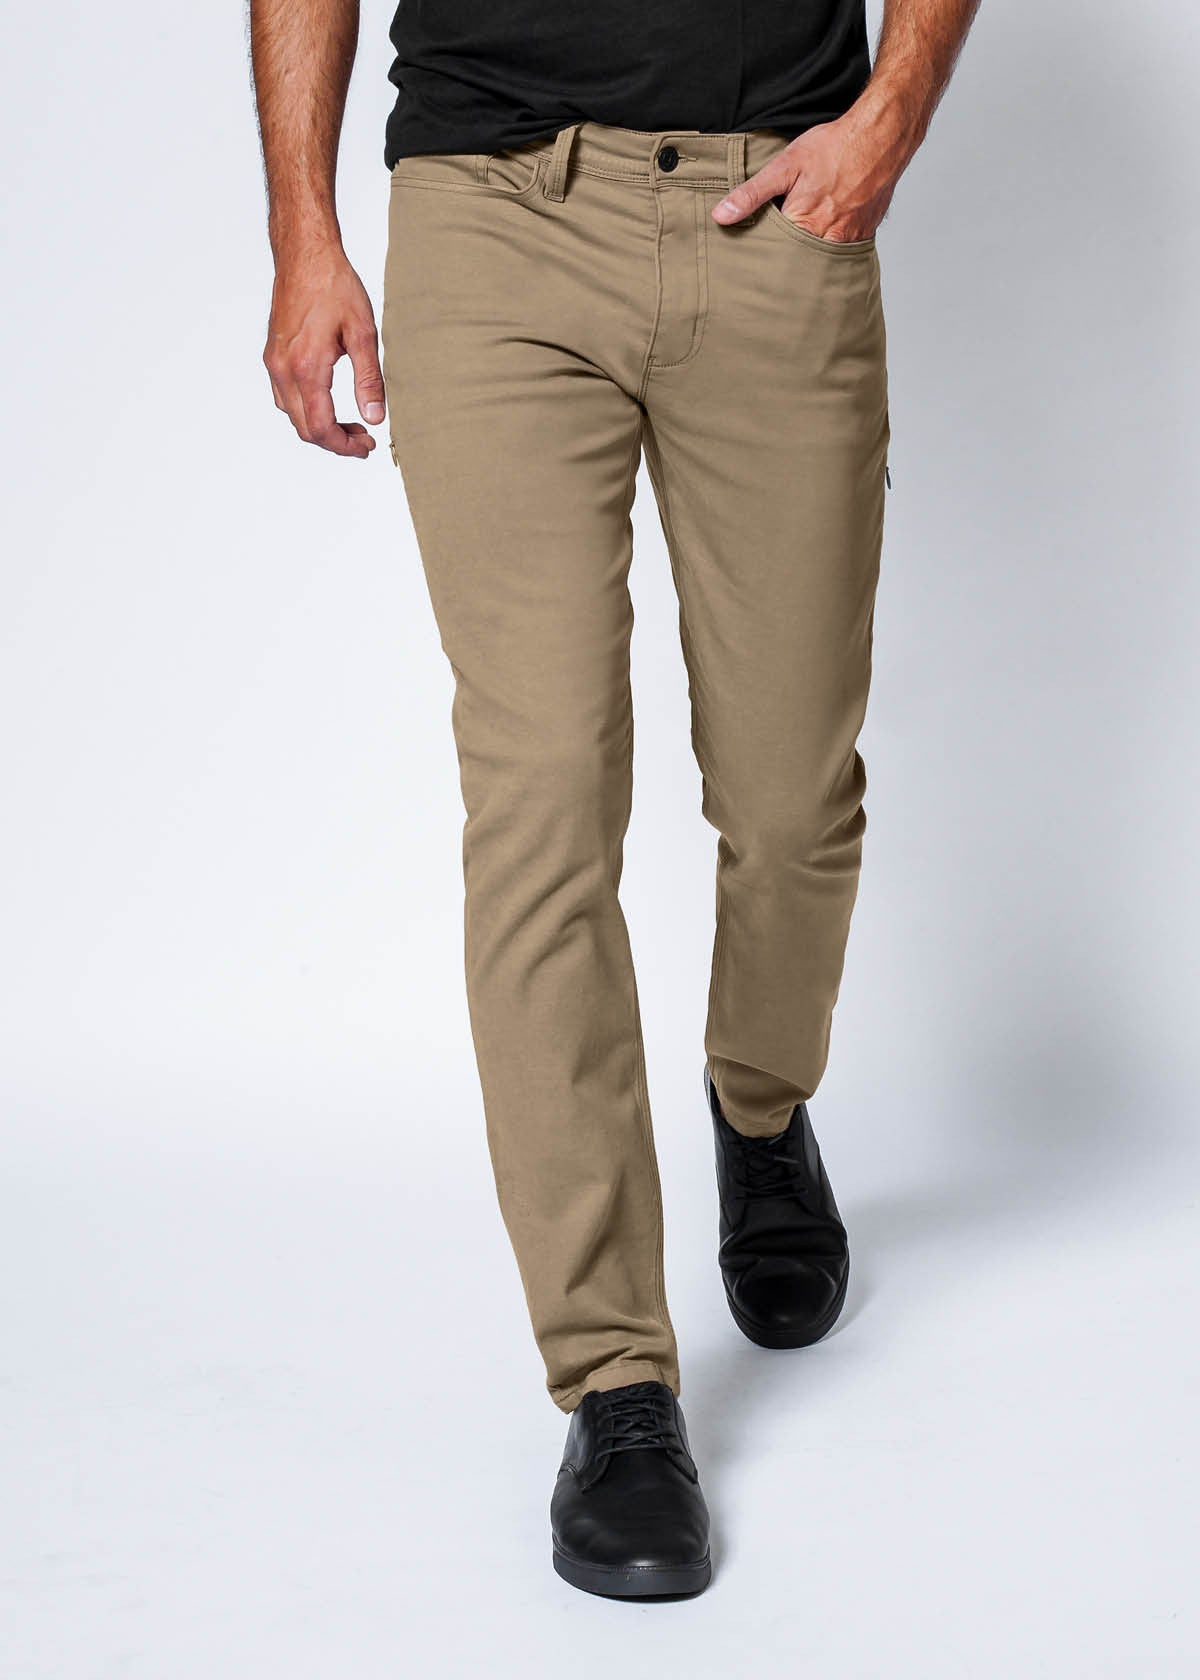 Live Lite AC Pant in Sahara by DUER